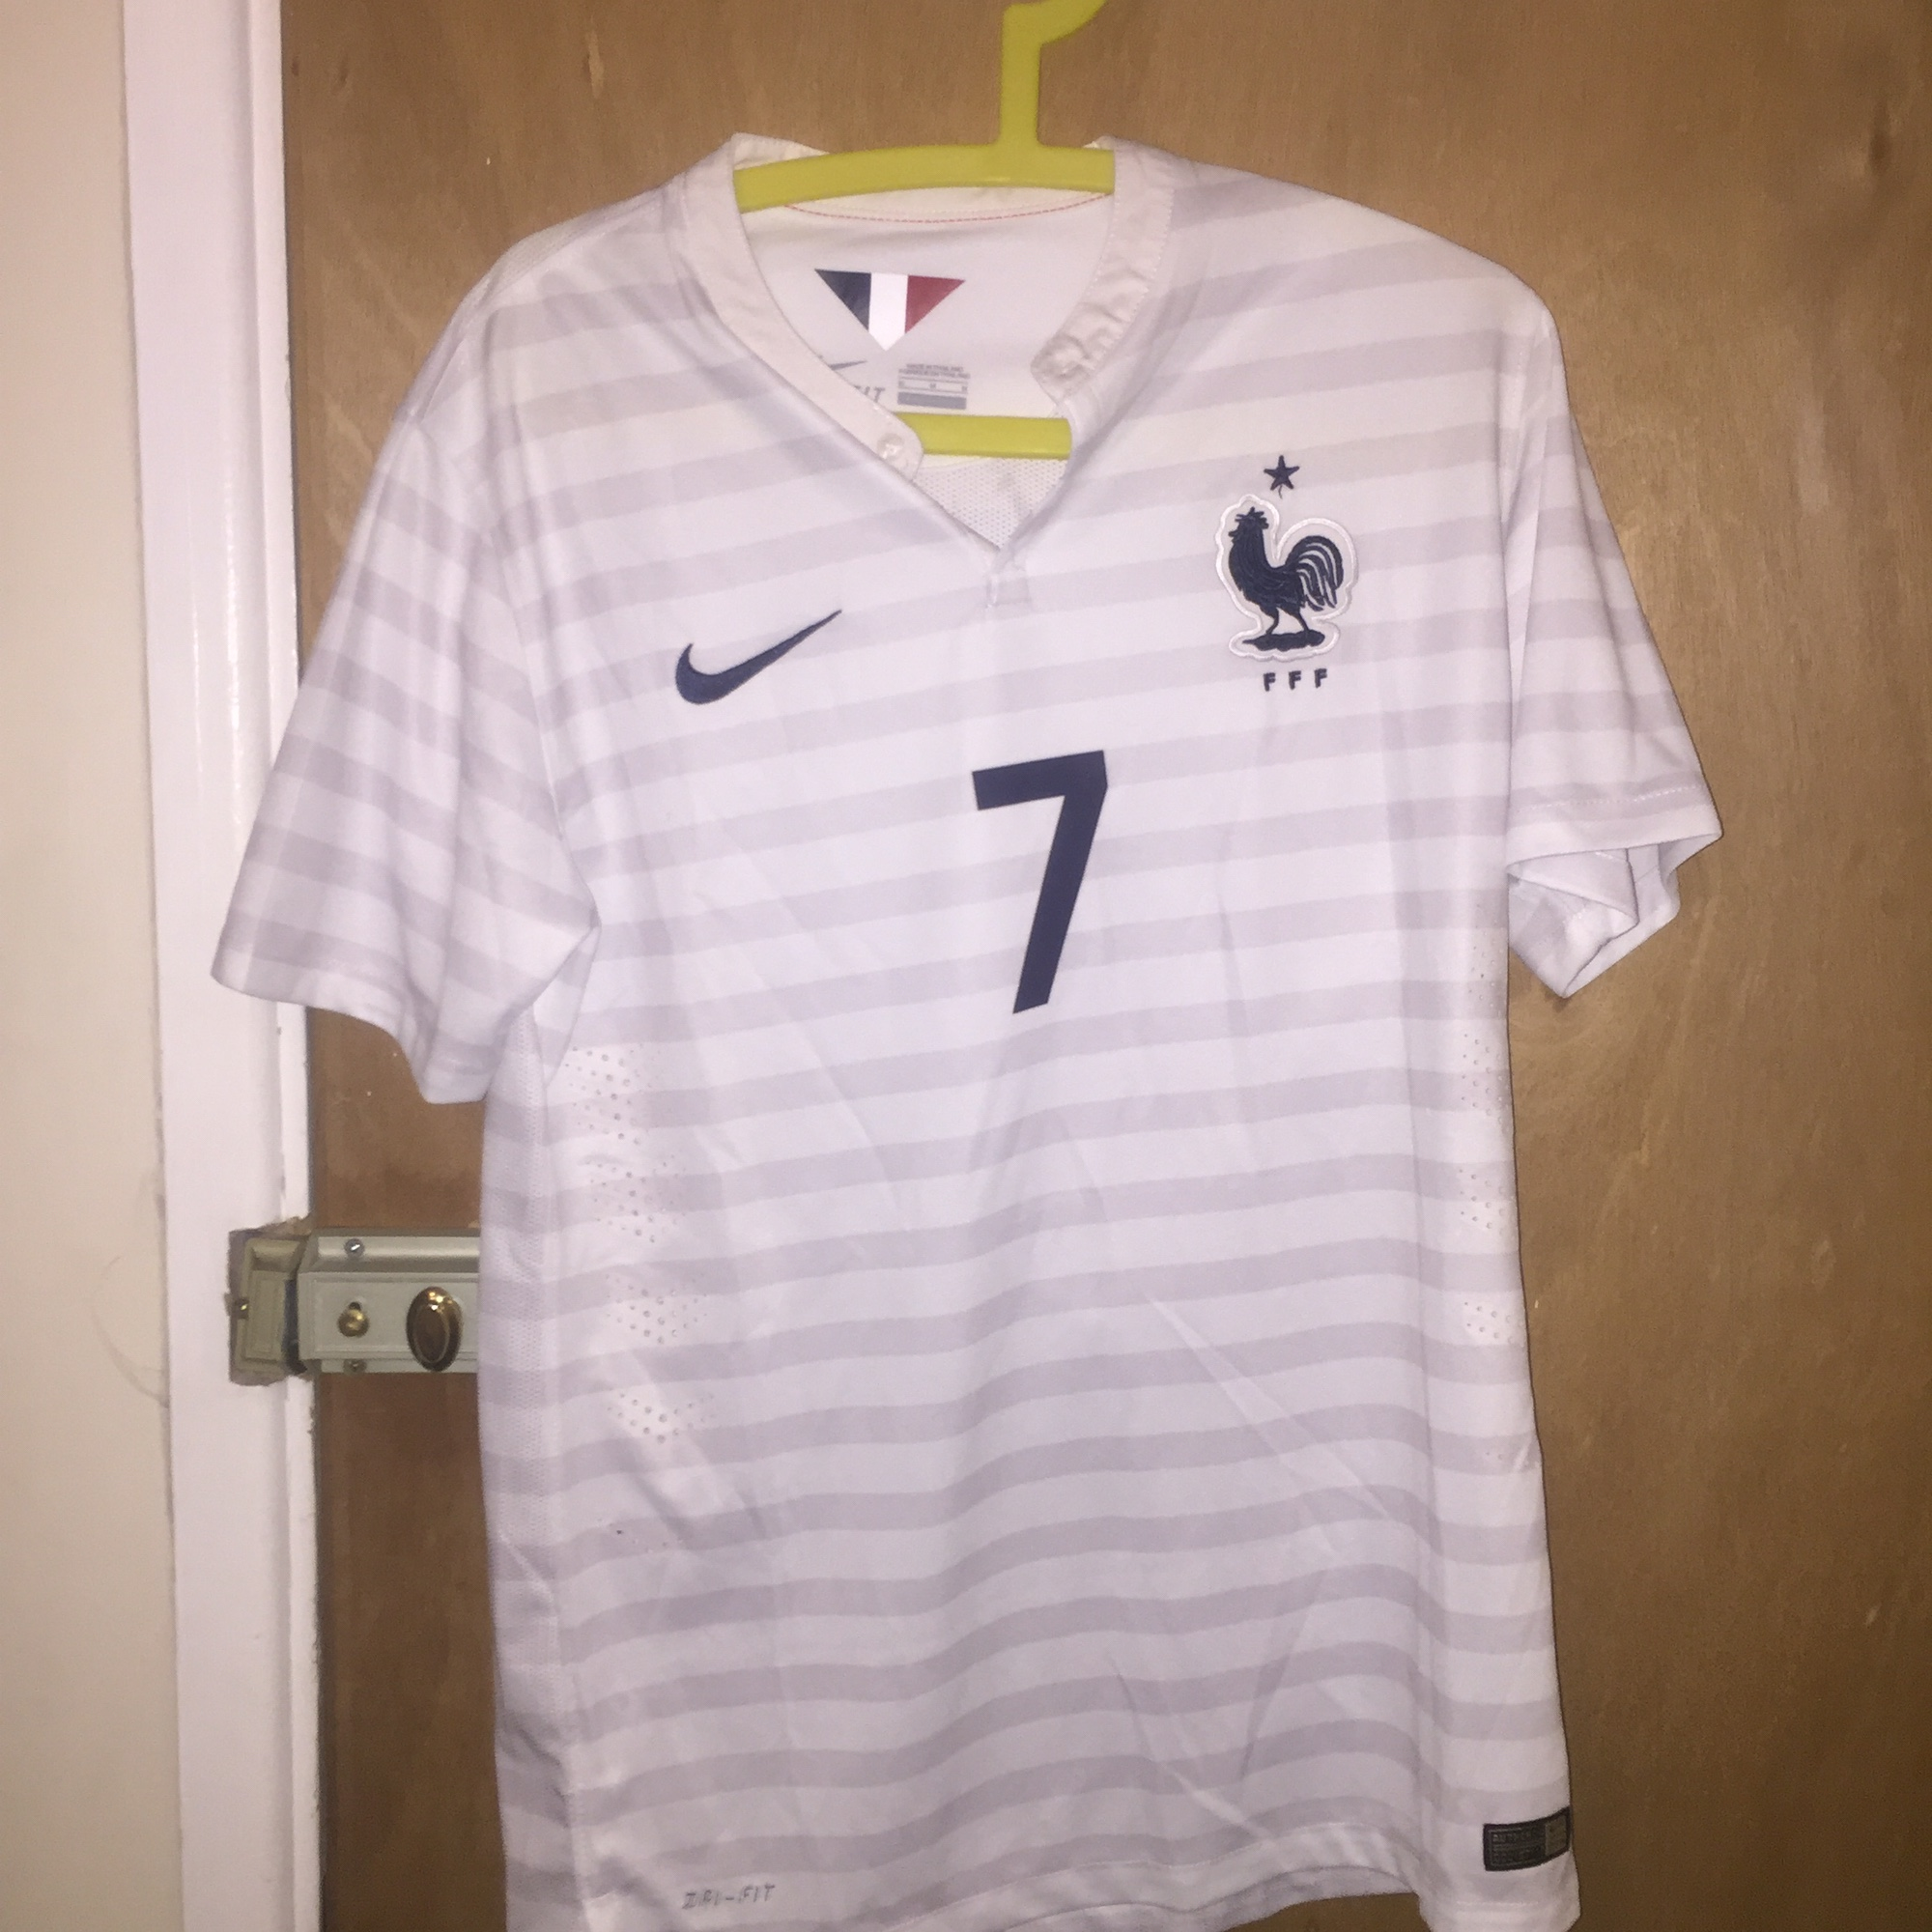 reputable site 6a558 04f7c France 2014/2015 Away Jersey - Nike - White with... - Depop